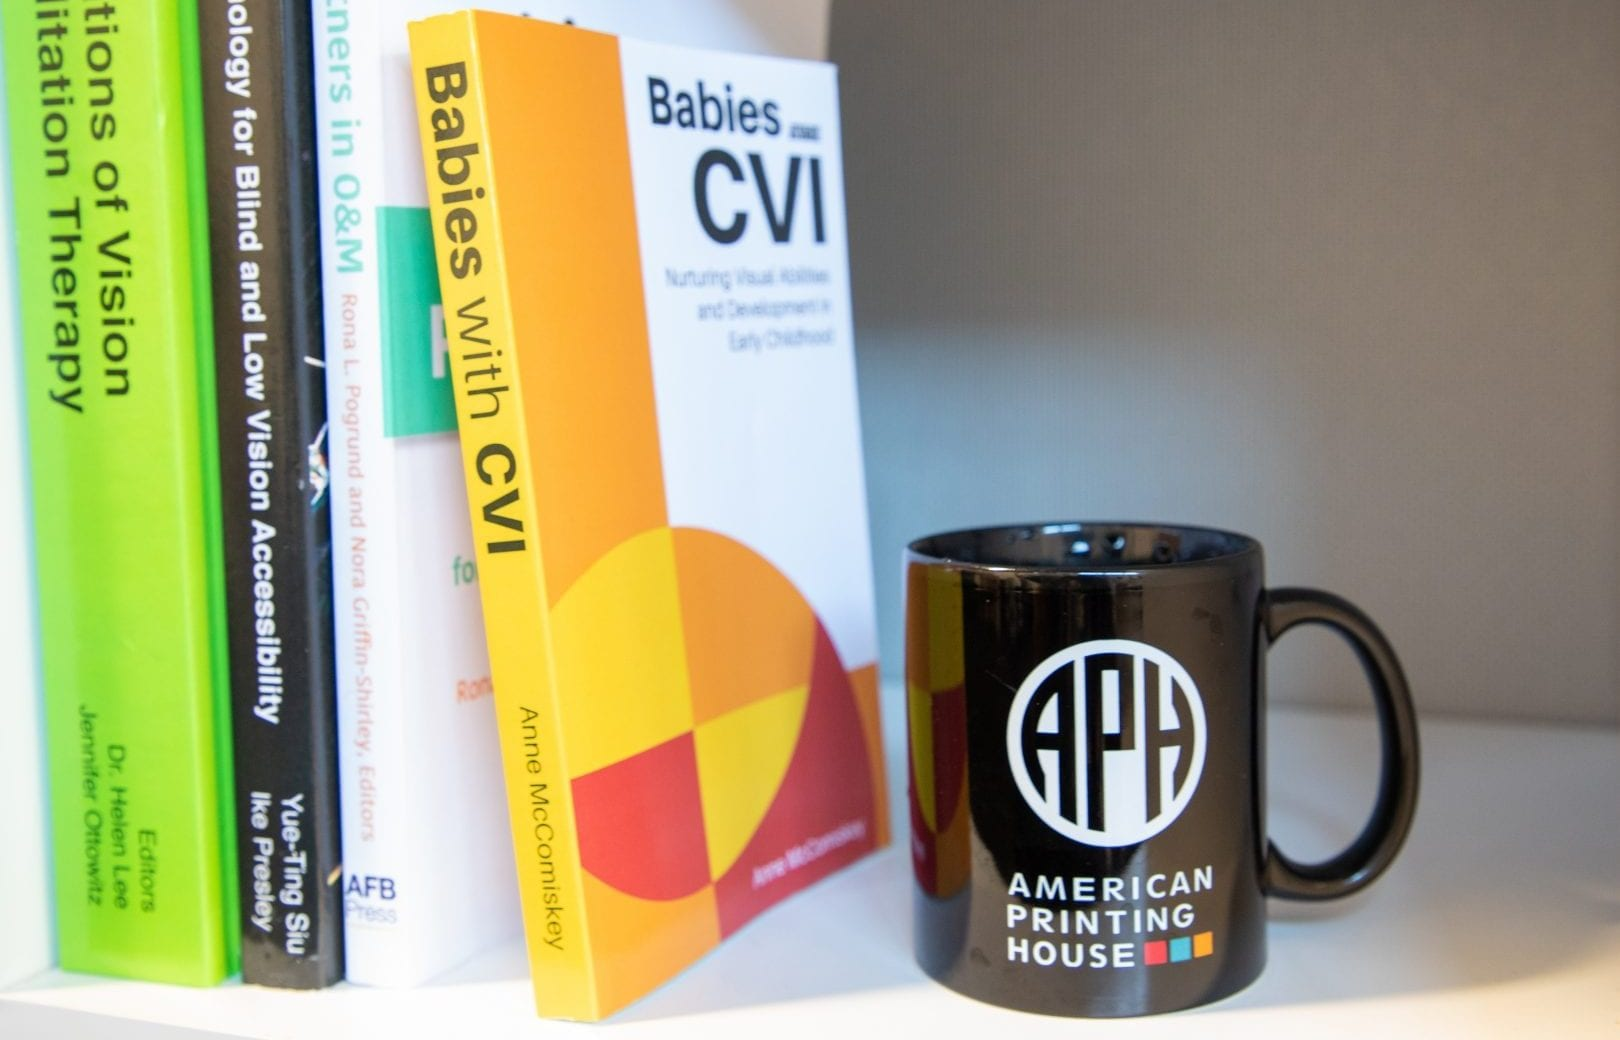 babies with CVI book sits on a bookshelf with other APH Press books. a black APH coffee up sits next to them.